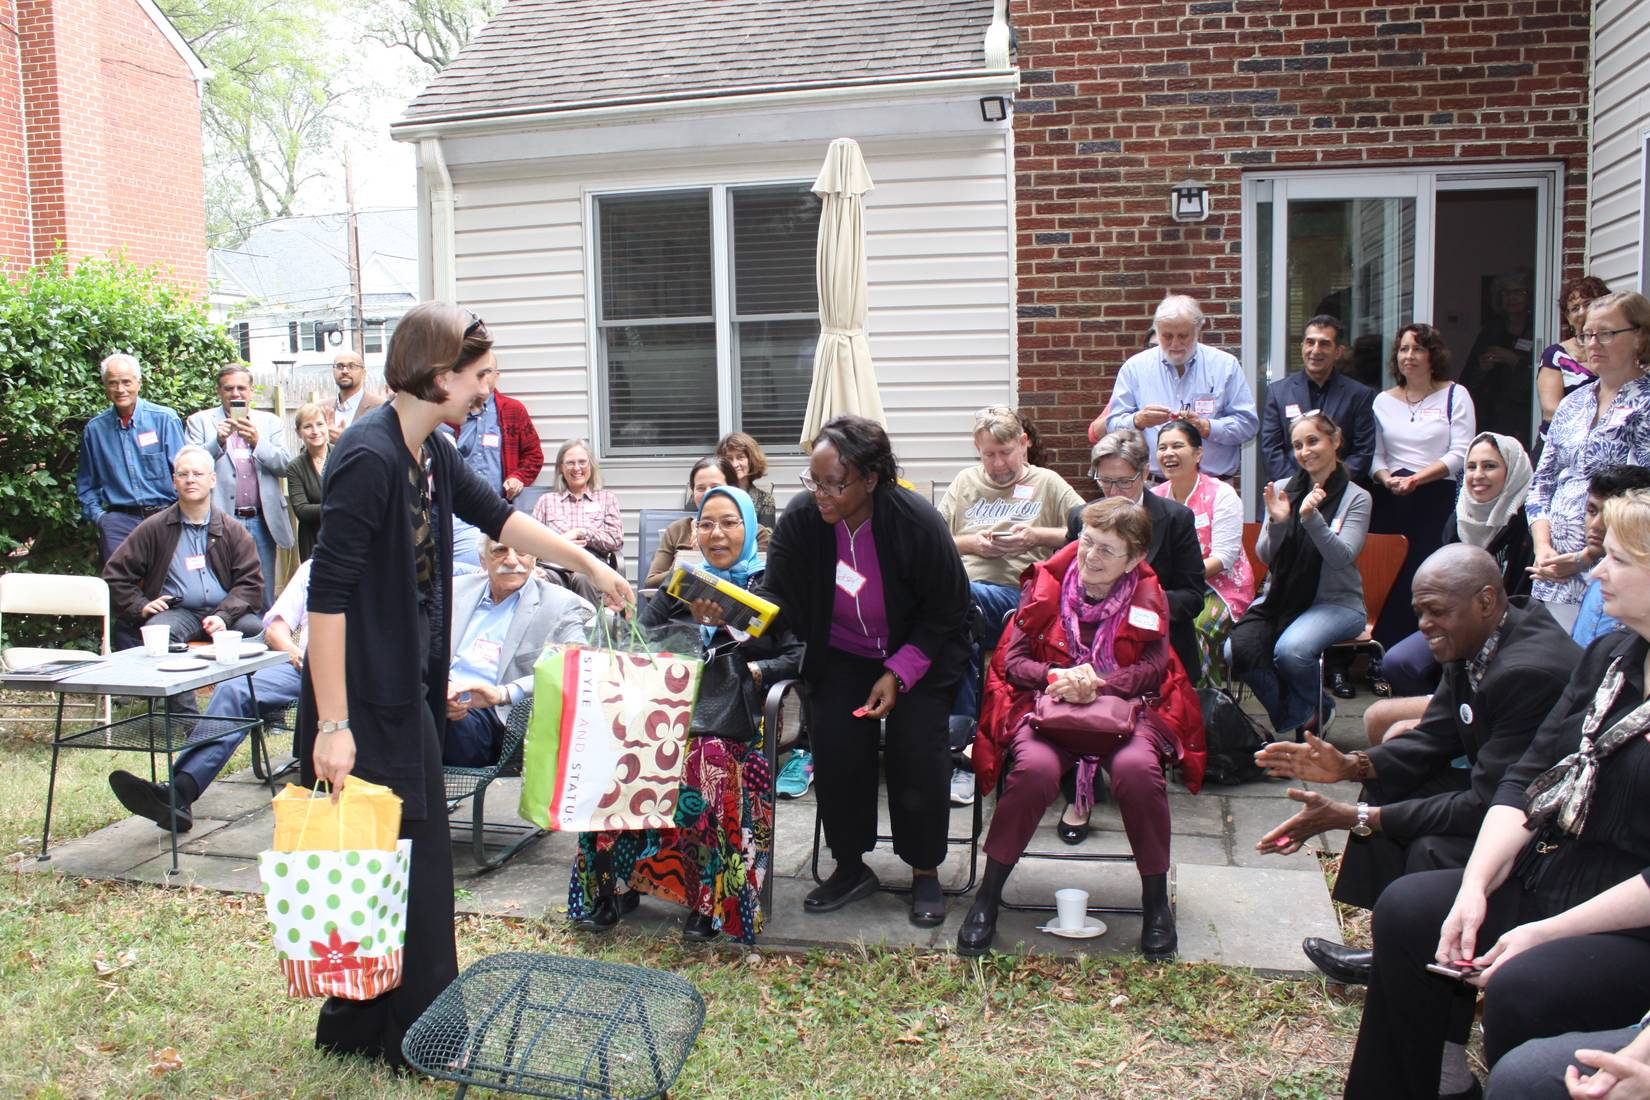 Second place raffle winner receiving prizes from Nonviolence International intern